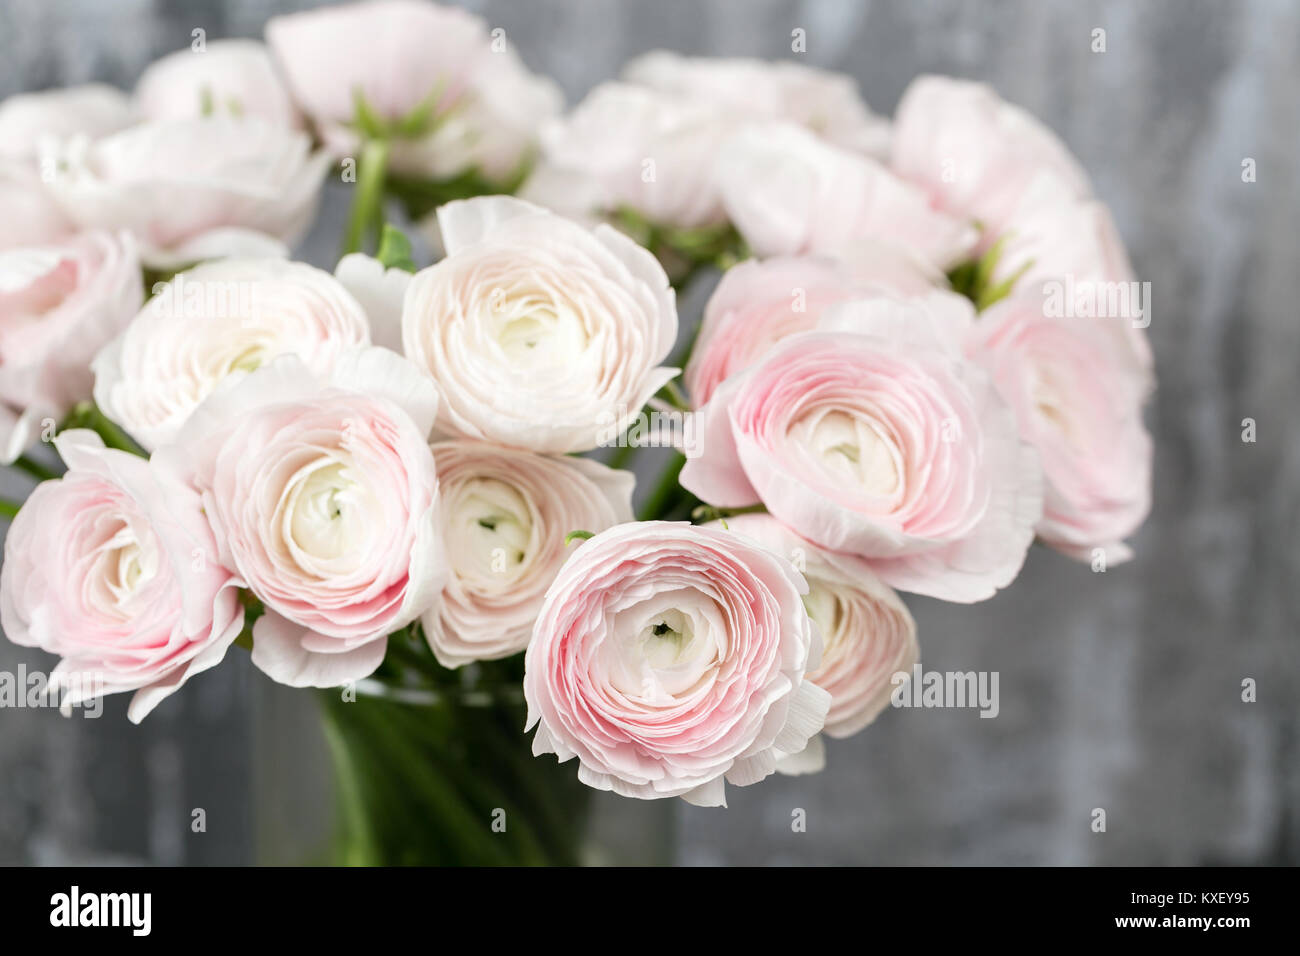 Vase With Beautiful Bouquet Of Ranunculus Flowers On Wooden Table Stock Photo Alamy